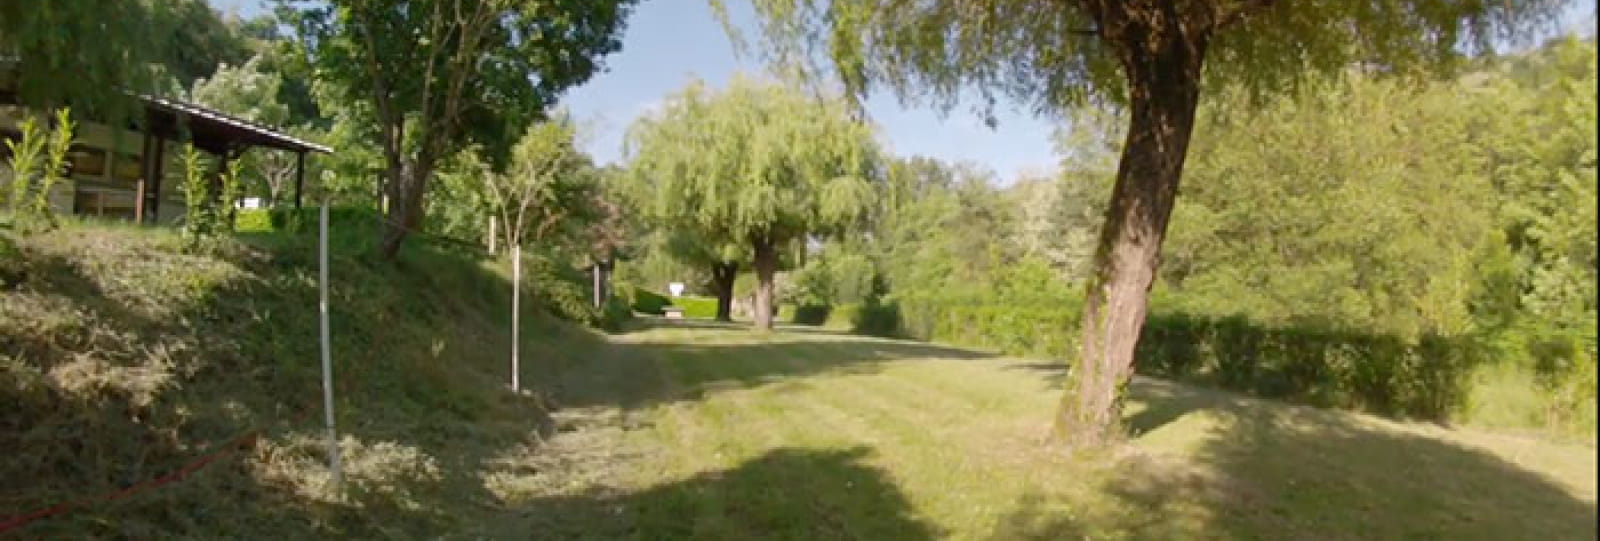 Camping le Marchand